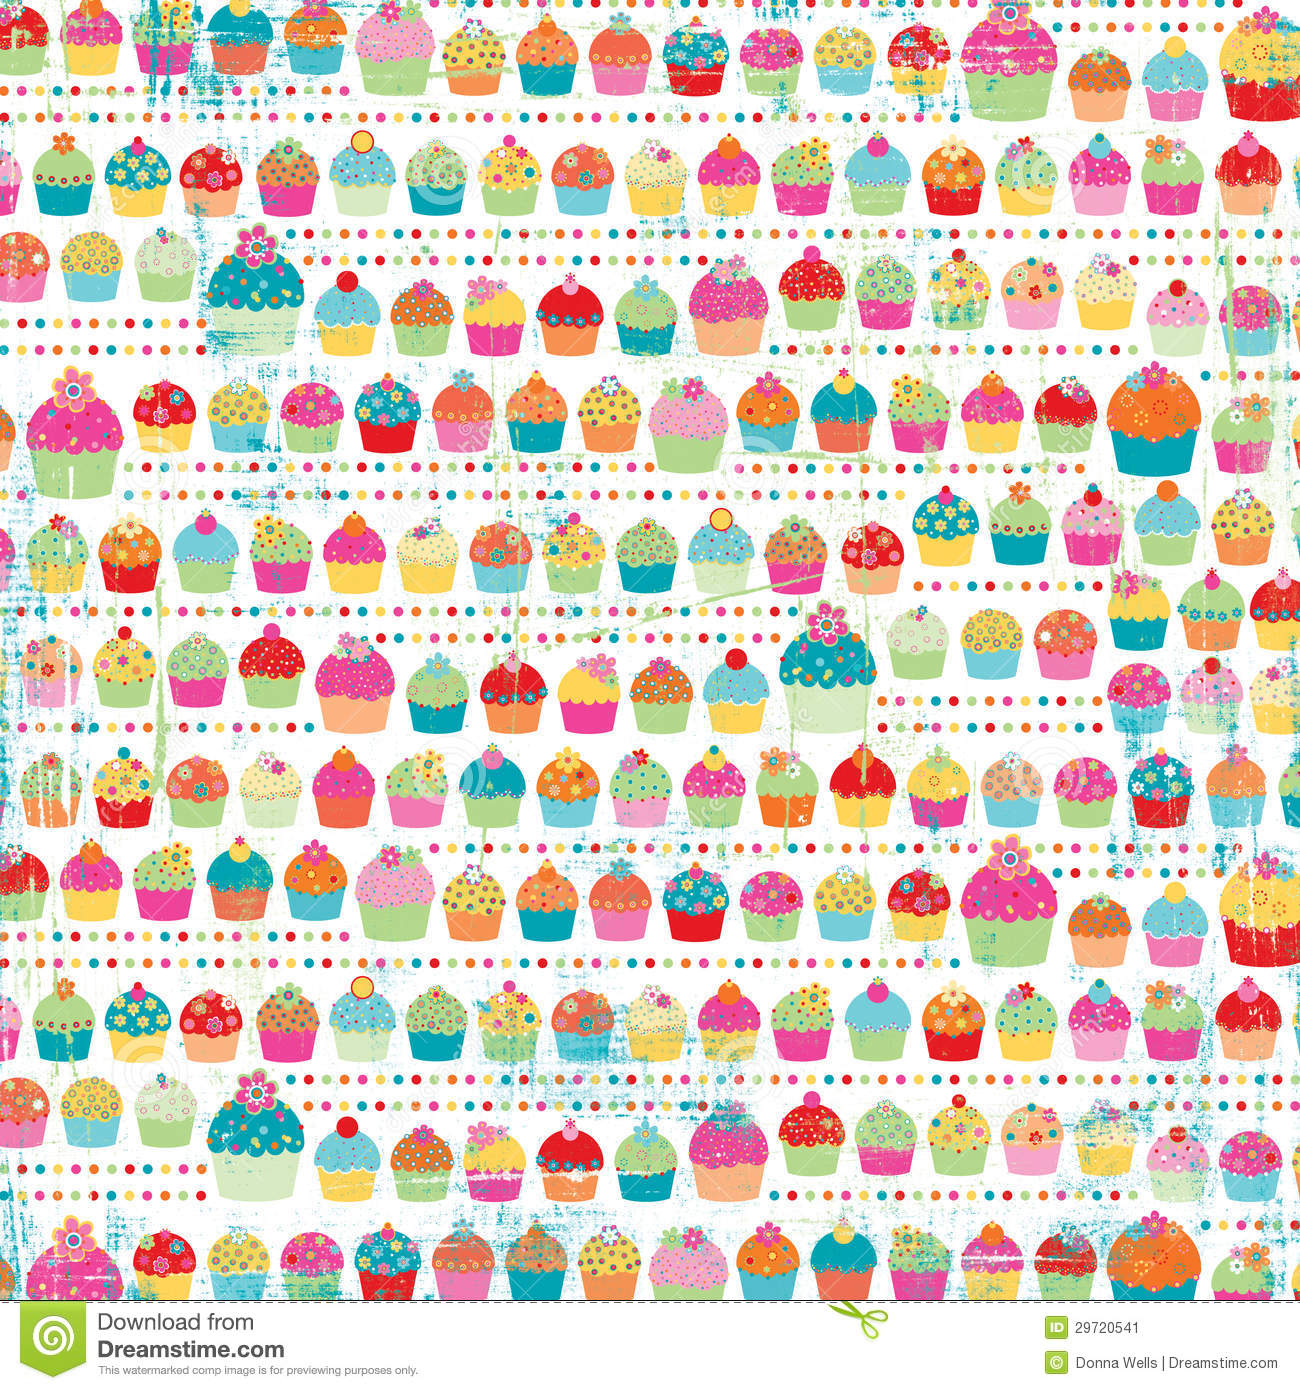 Row of cupcakes clipart image free download Row of cupcakes clipart - ClipartFest image free download